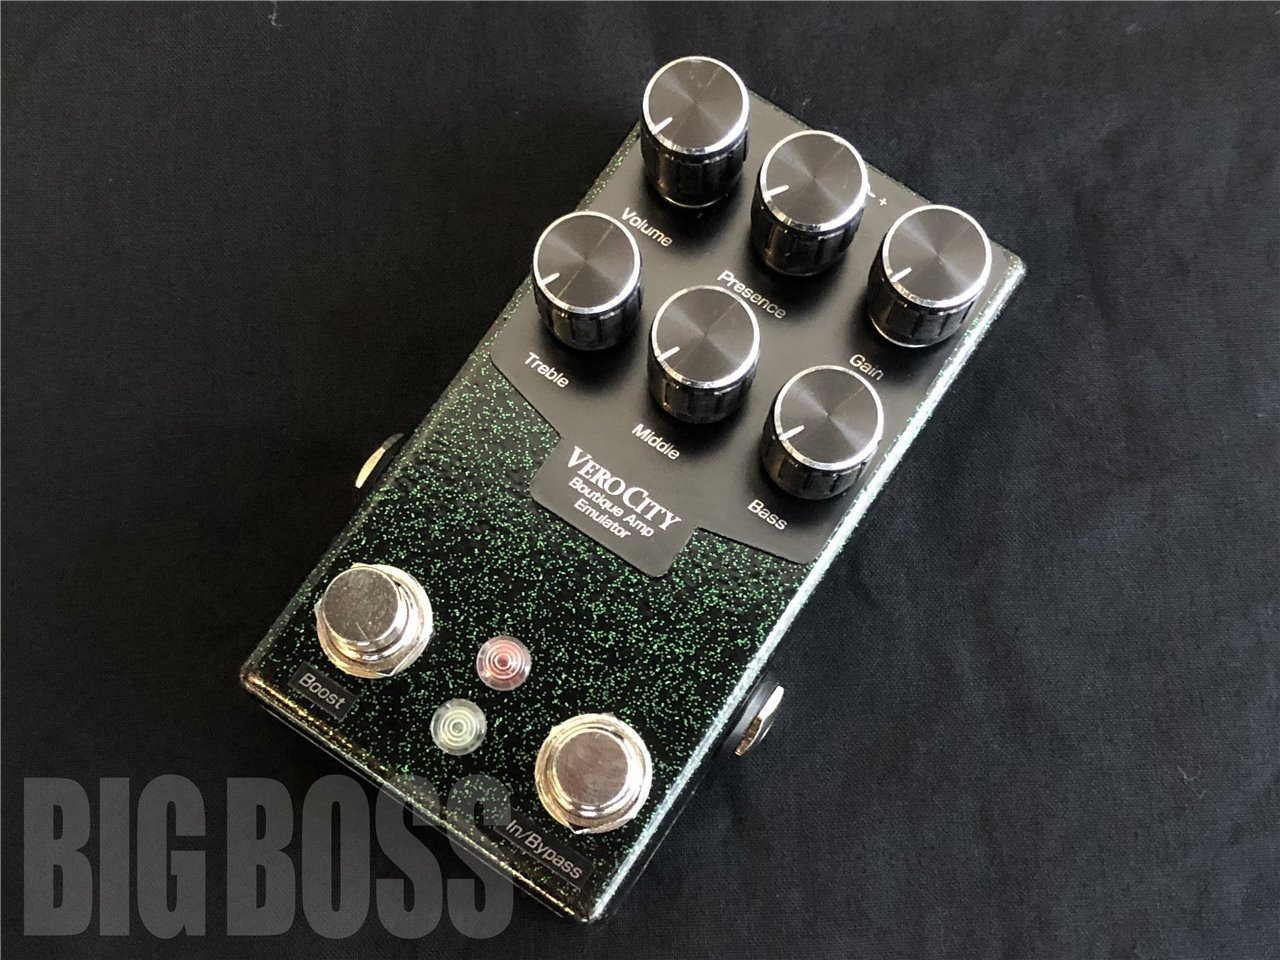 【受注生産】VeroCity Effects Pedals Rev.F-B2 / Devil Emerald